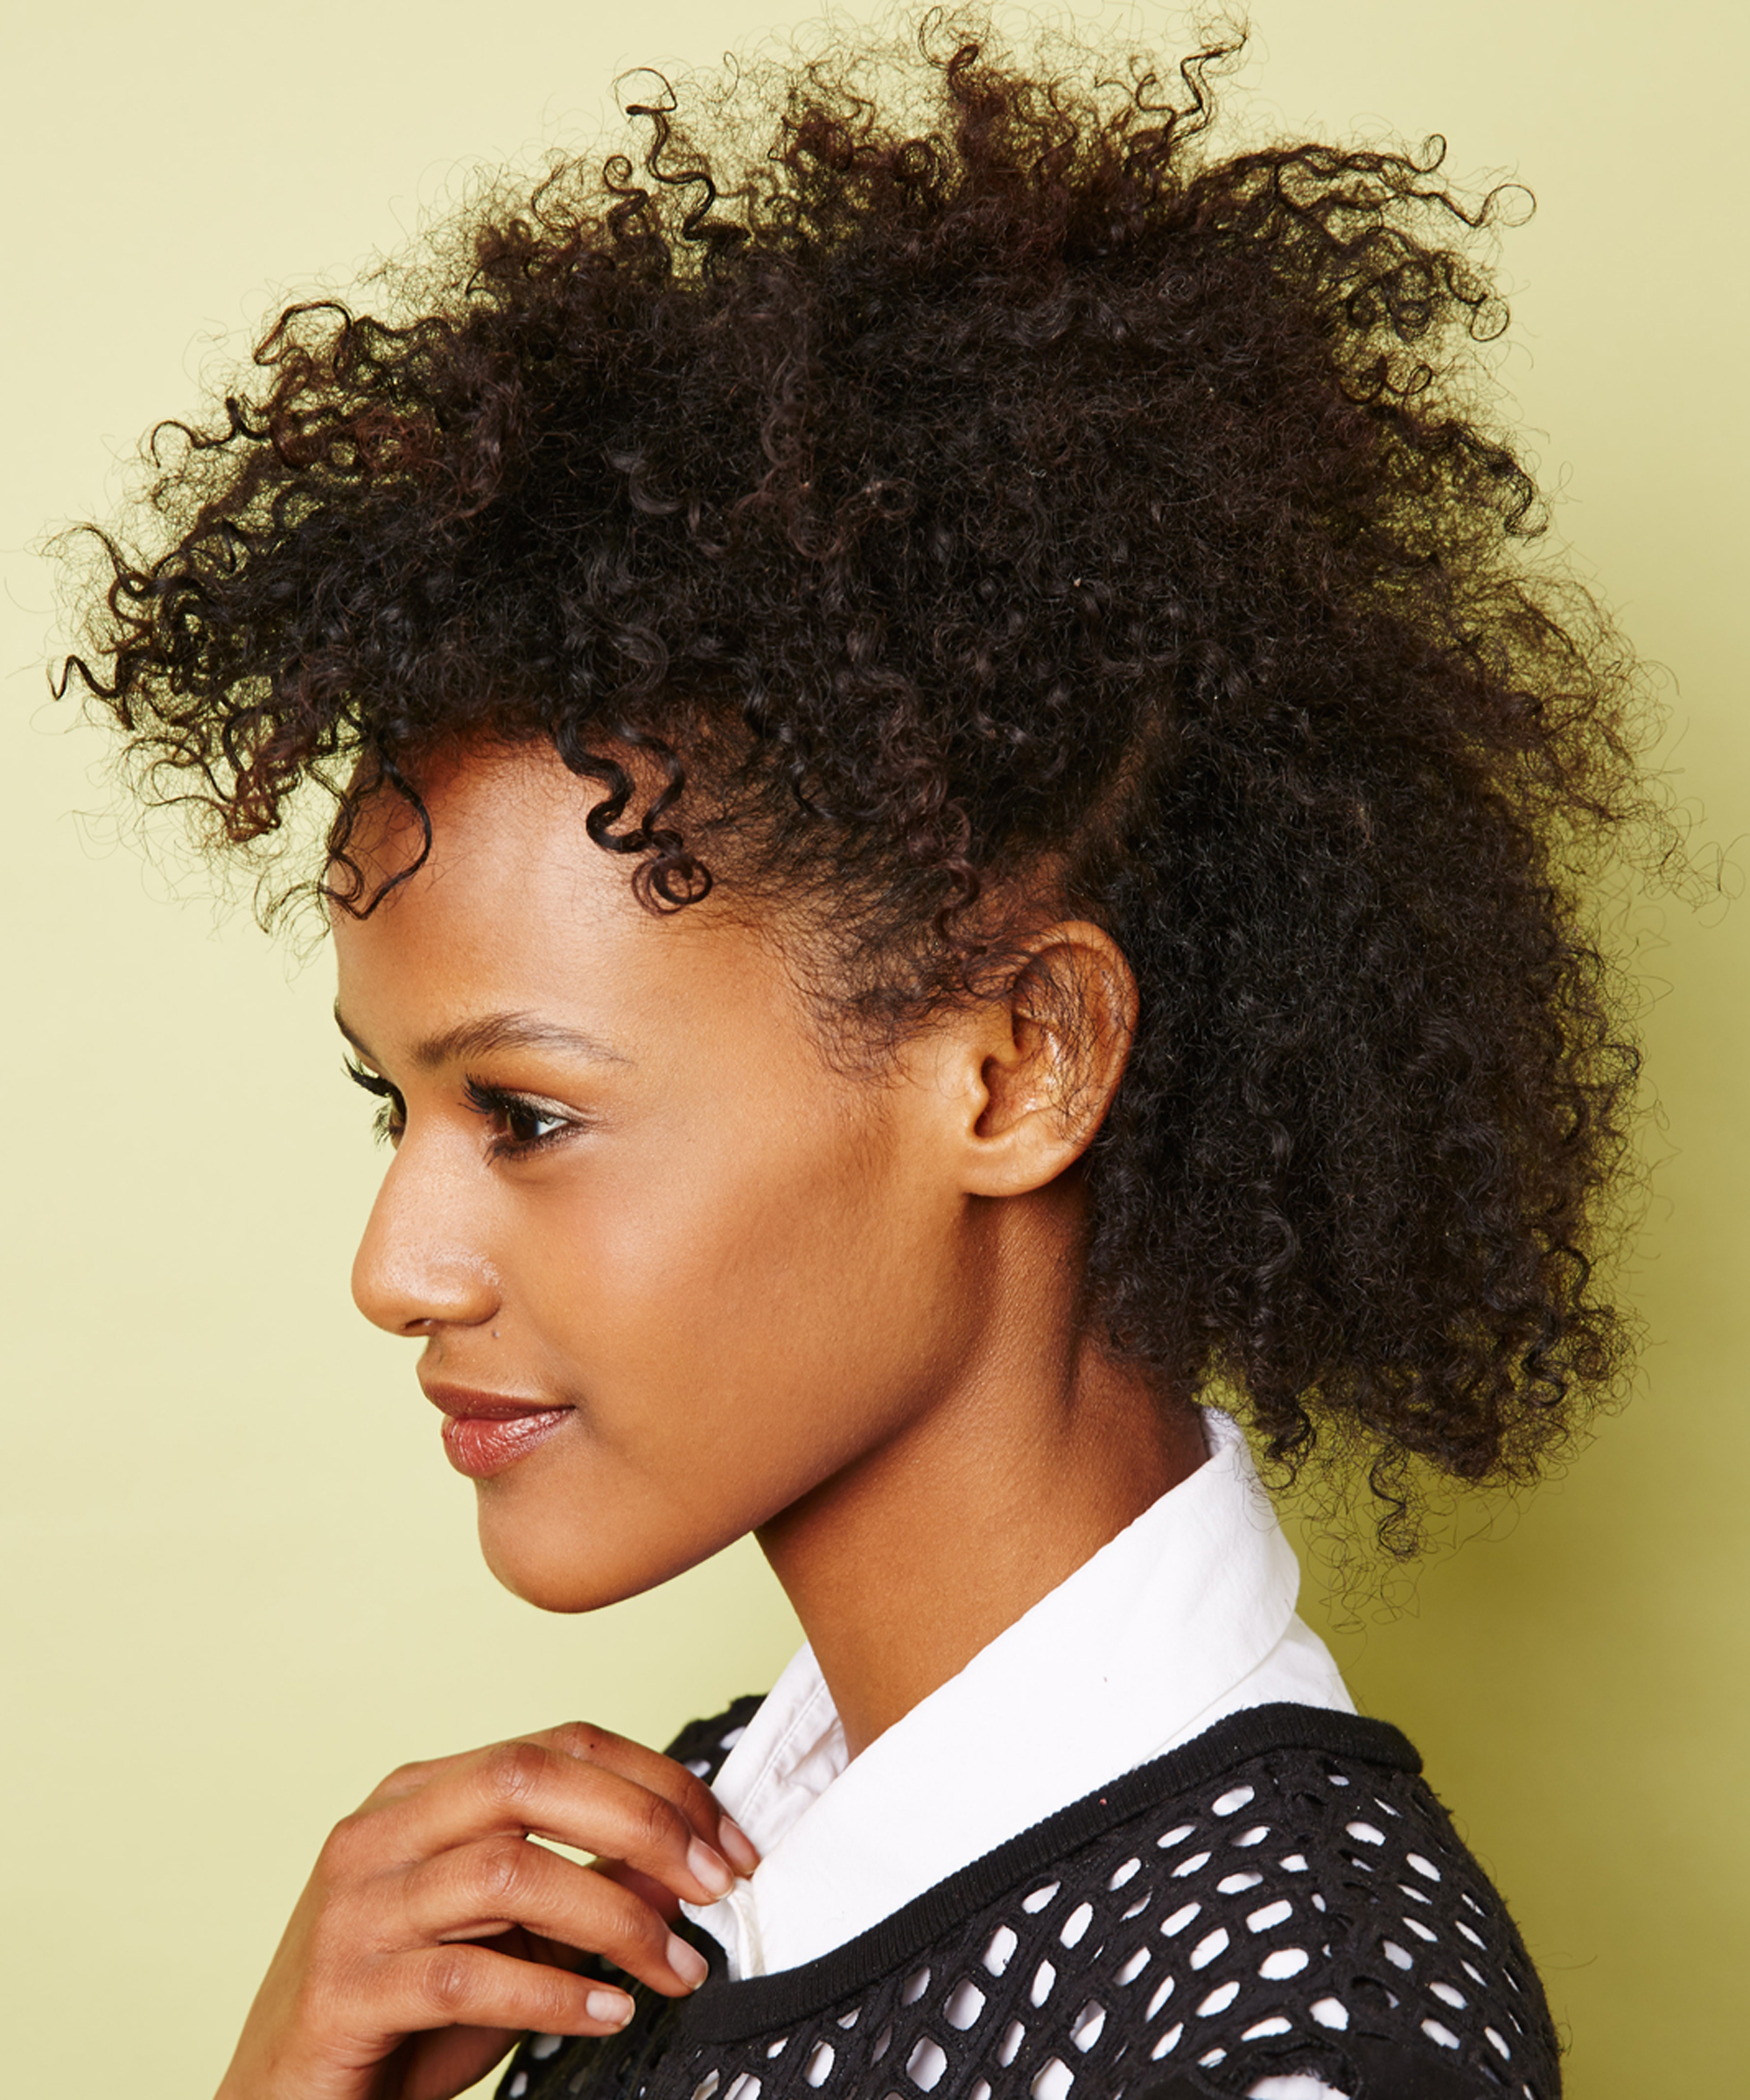 Best Natural Hair Salons America Nationwide - Curly cut dc